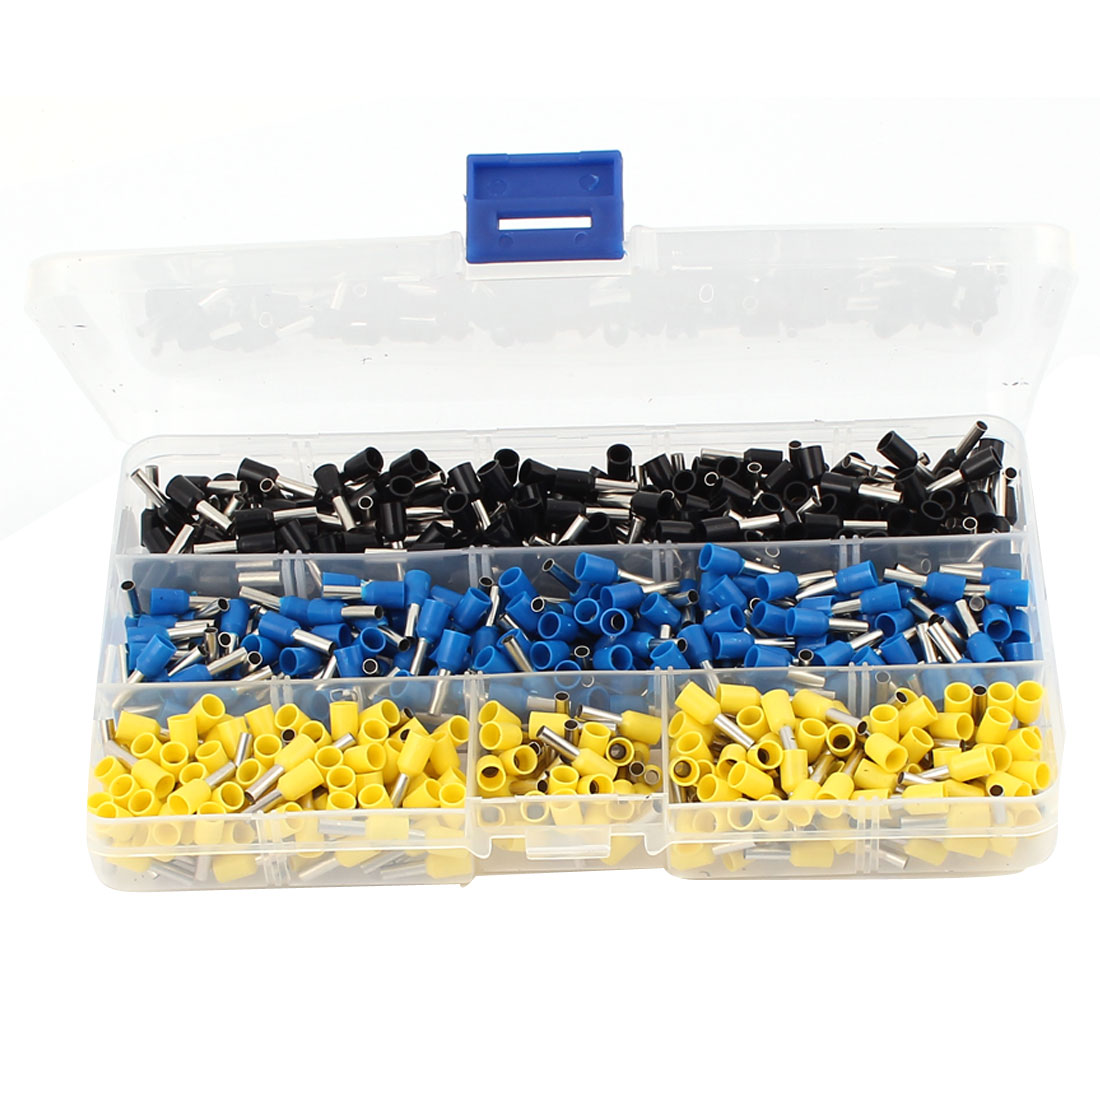 600 Pcs AWG14 Insulated Ferrule Terminal Wire Crimp Connector Assorted Set